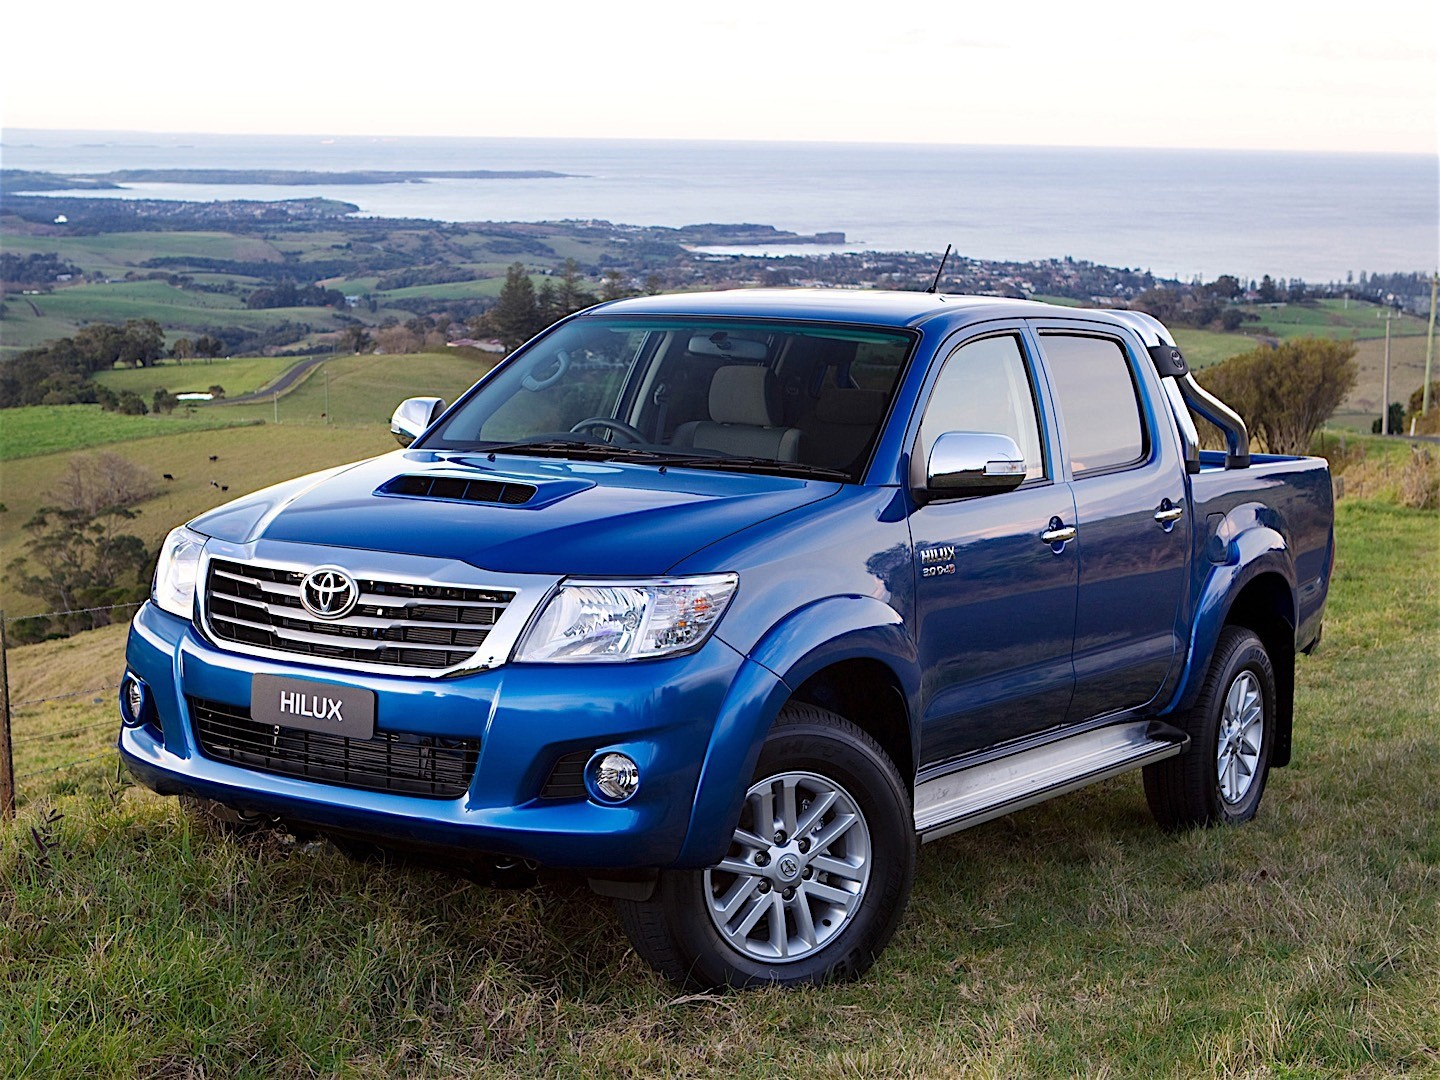 toyota hilux double cab specs photos 2011 2012 2013 2014 2015 autoevolution. Black Bedroom Furniture Sets. Home Design Ideas